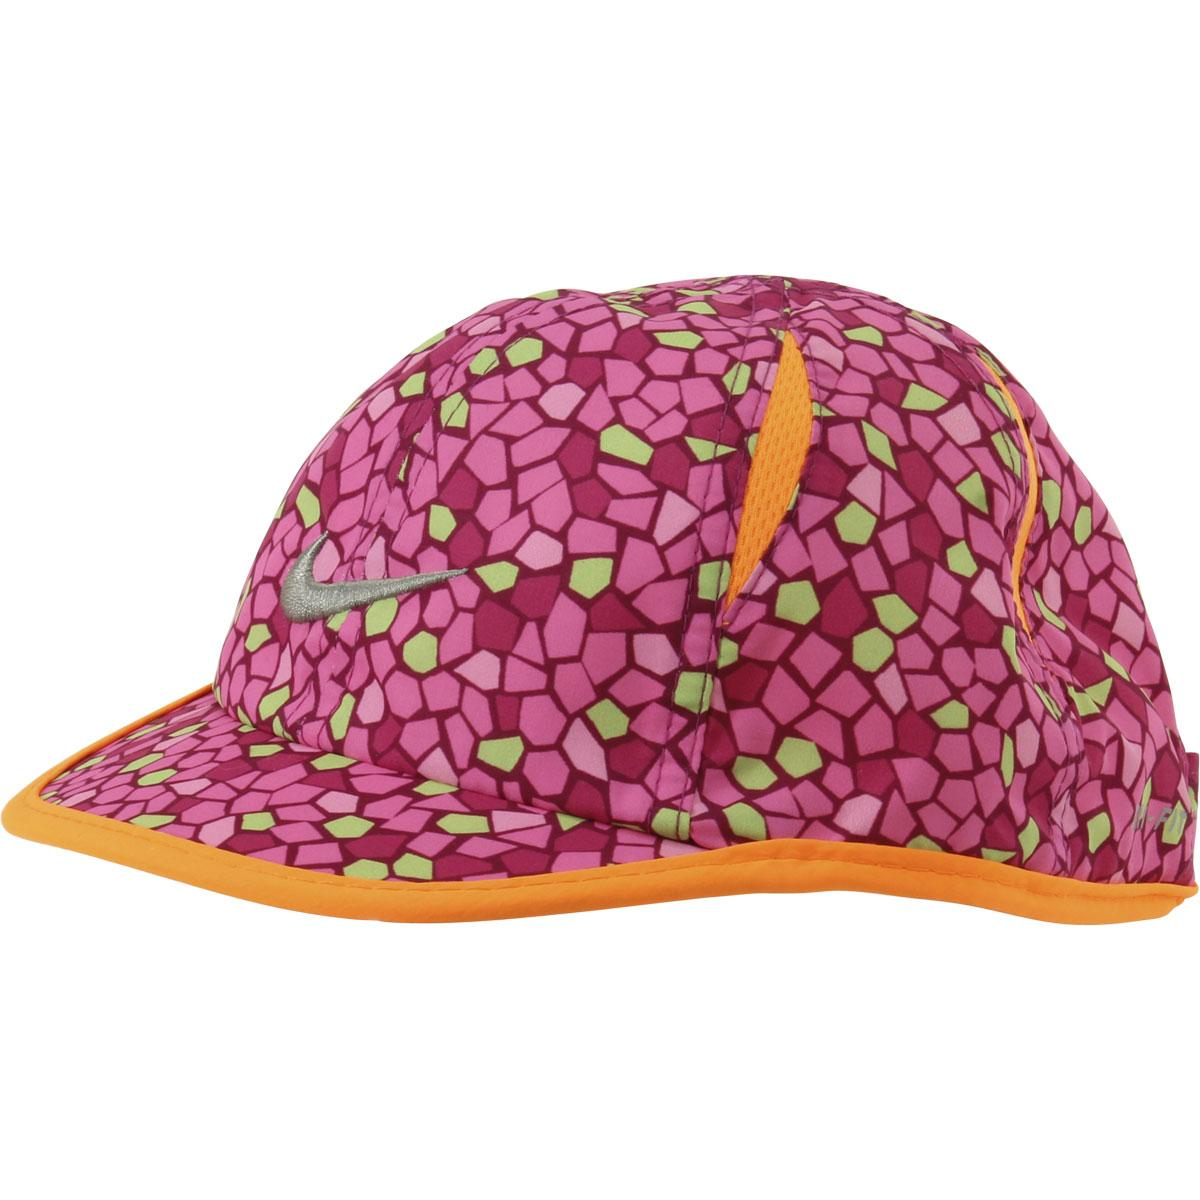 Nike Youth Girl s Feather Light Baseball Cap Hat b4bb10370a0